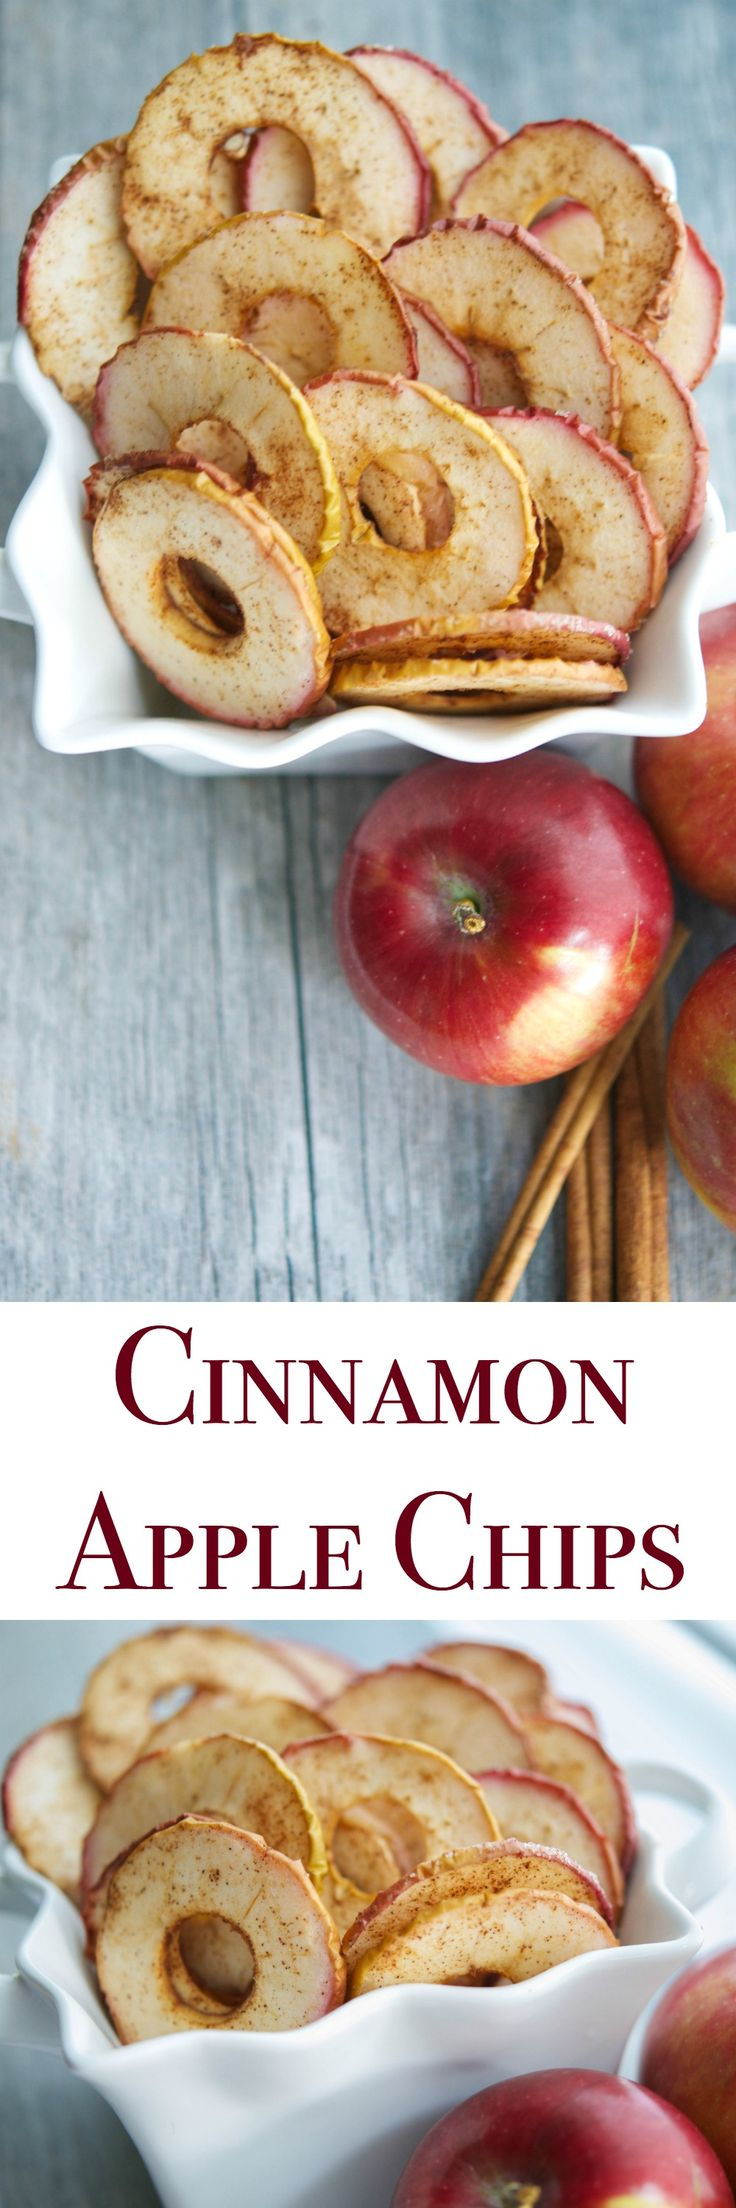 These Cinnamon Apple Chips, made with a few simple ingredients, are a healthy snack your whole family will love. (fall desserts greek yogurt)